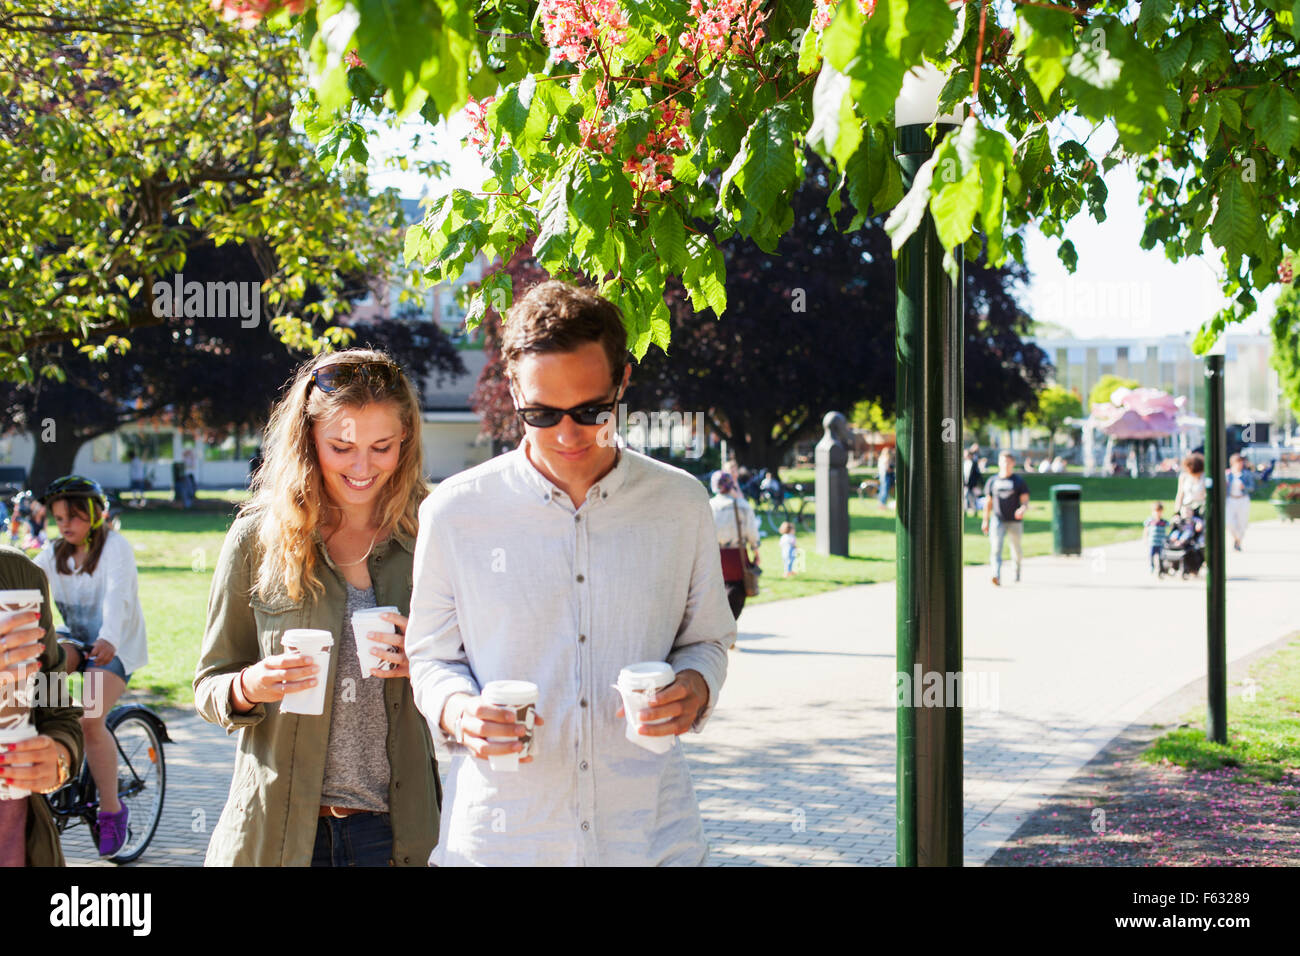 Couple holding disposable cups while walking on street at park - Stock Image